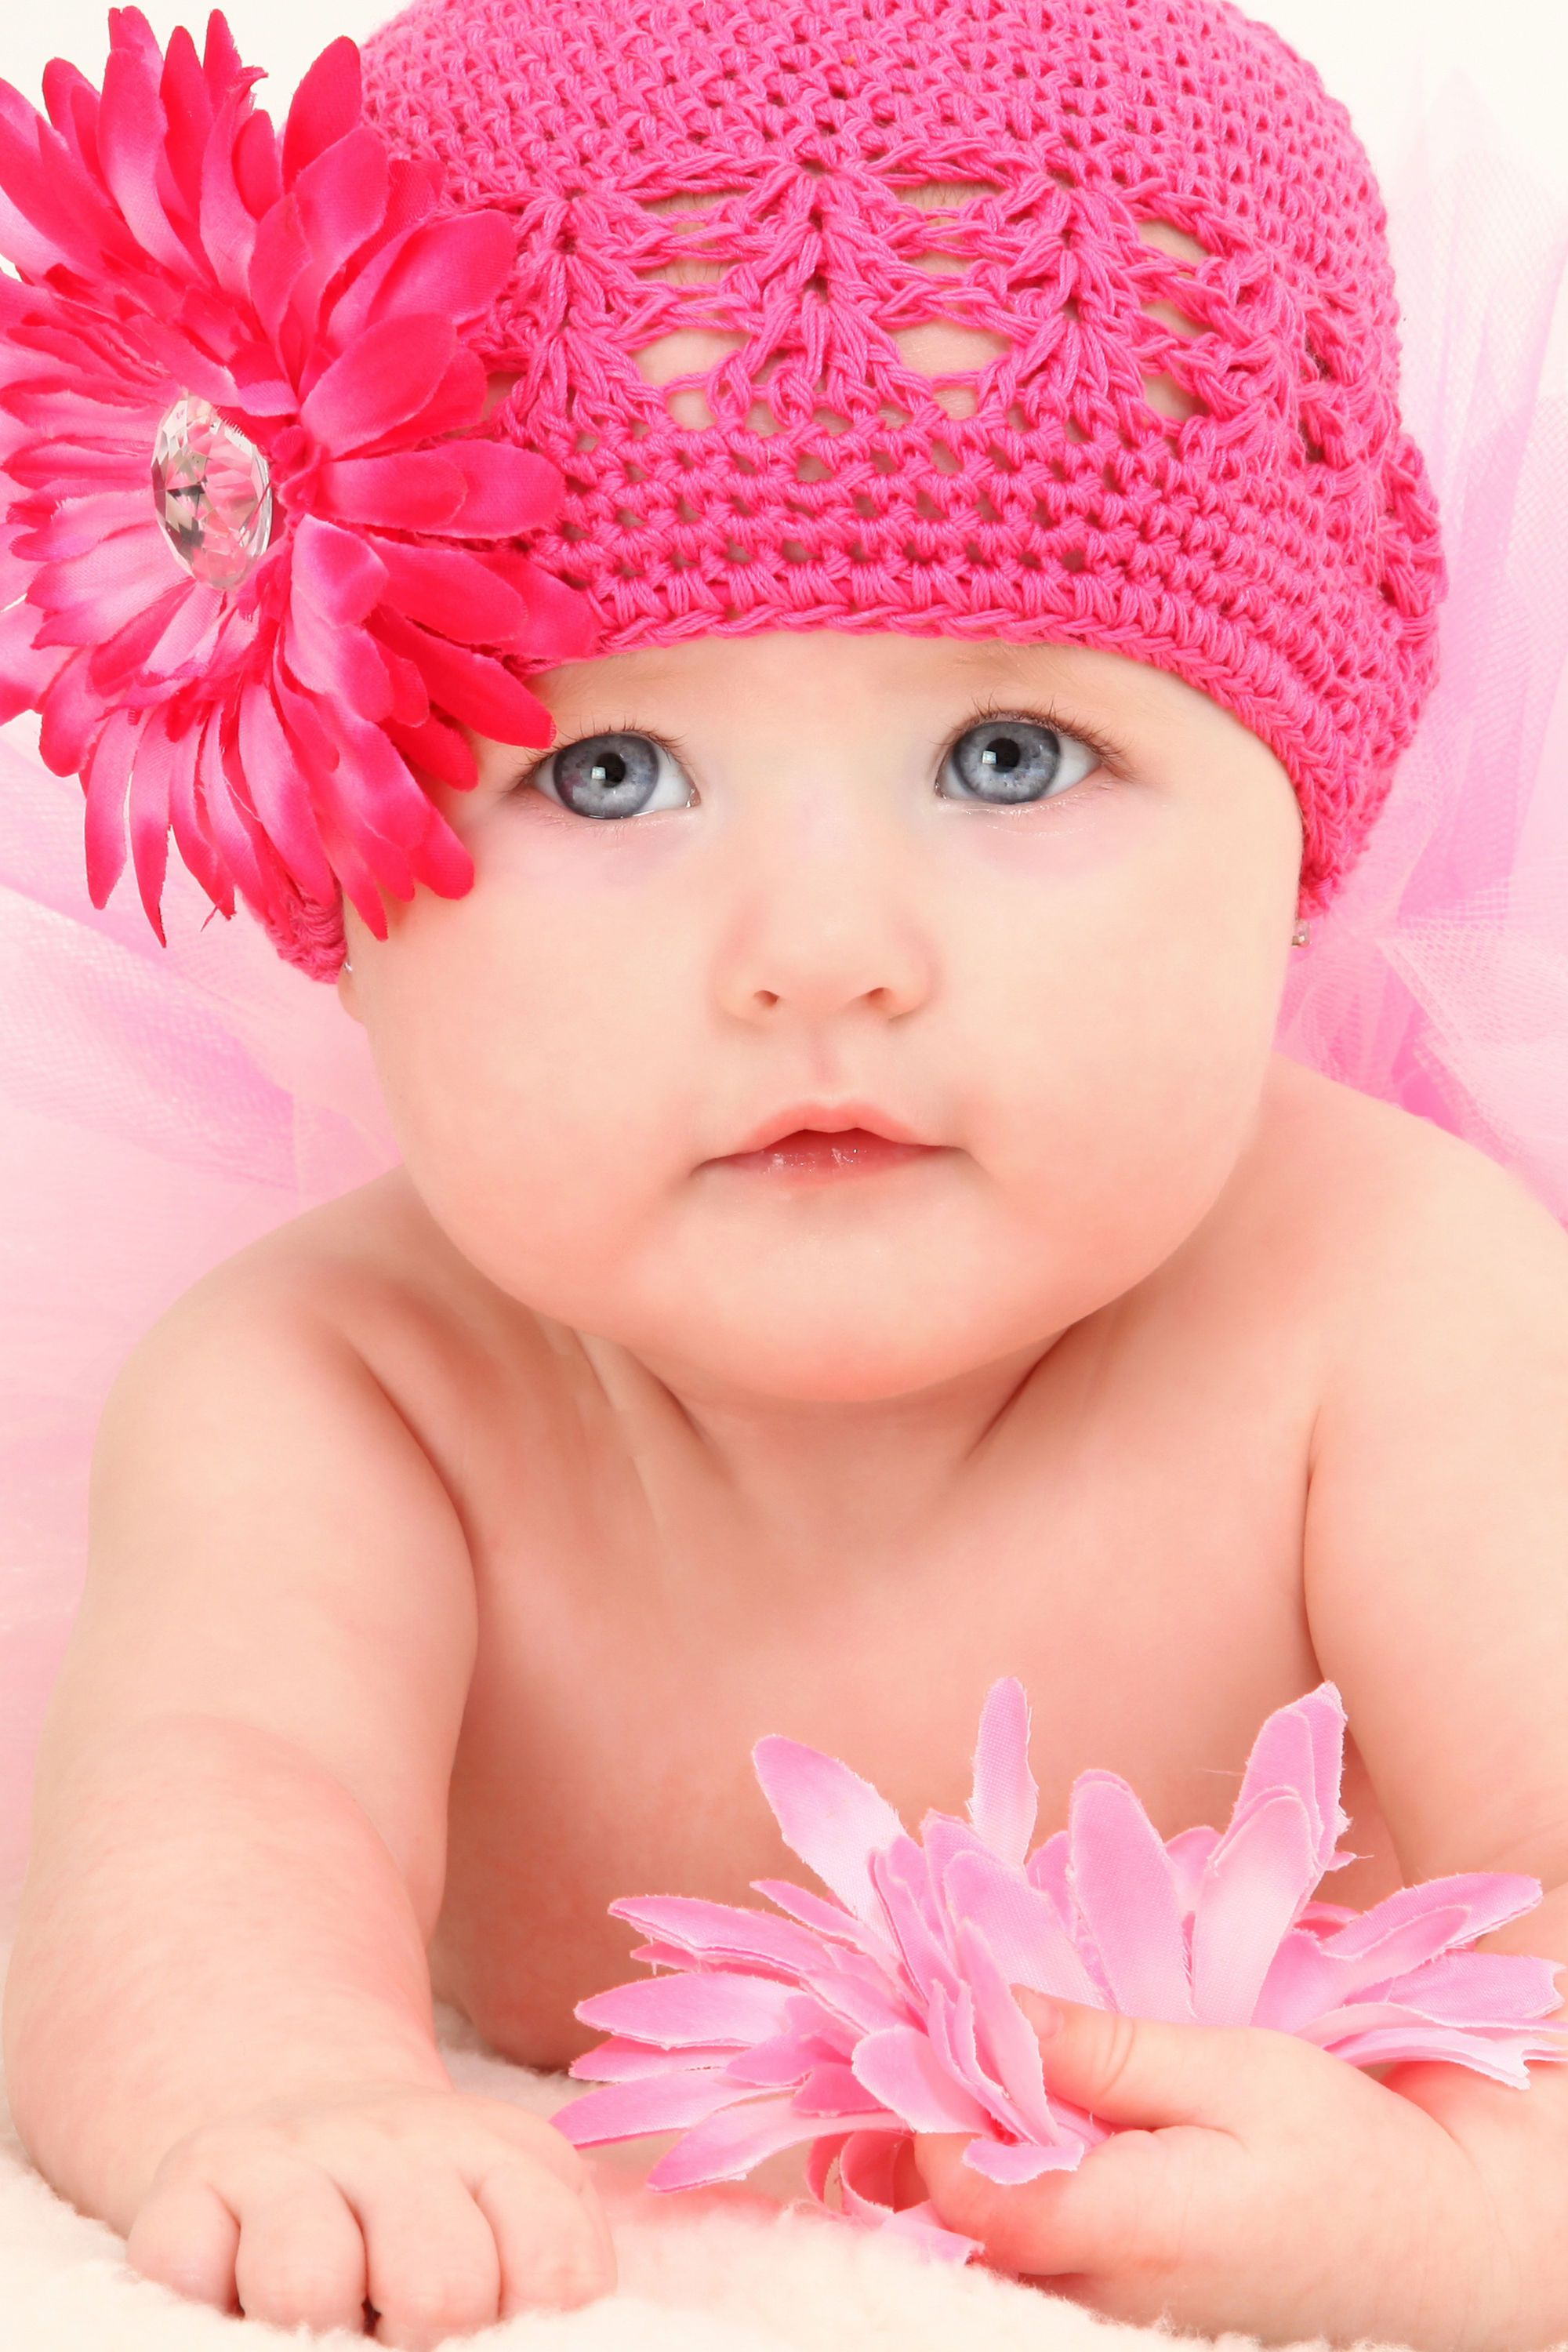 surprised baby face wallpaper high quality resolution | wallpapers